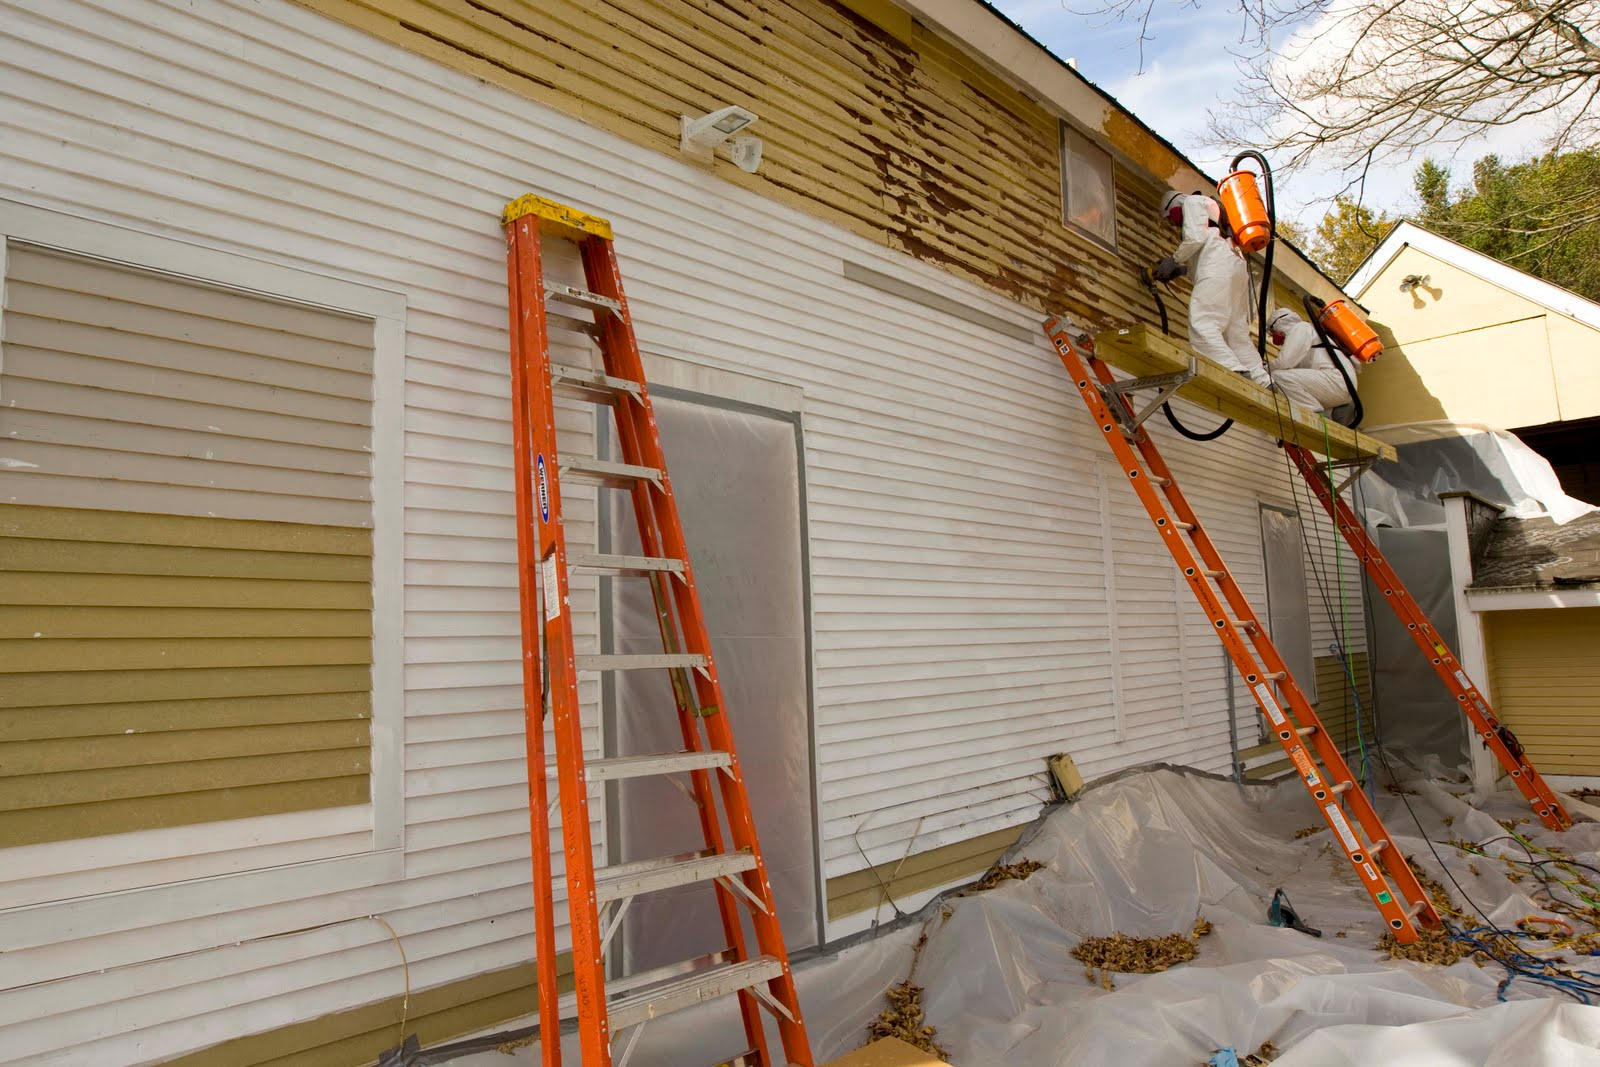 Vermont Professional Construction Painting Llc New Lead Removal Gear